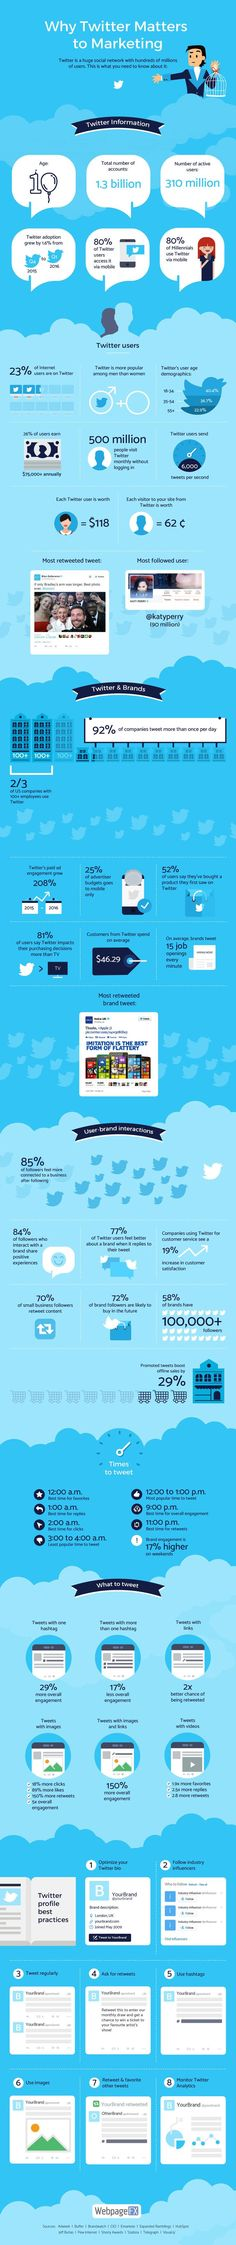 Using Twitter for Marketing Infographic. Topic: social media, business, entrepreneur, advertising, ad, tweets, retweets, internet promotion.